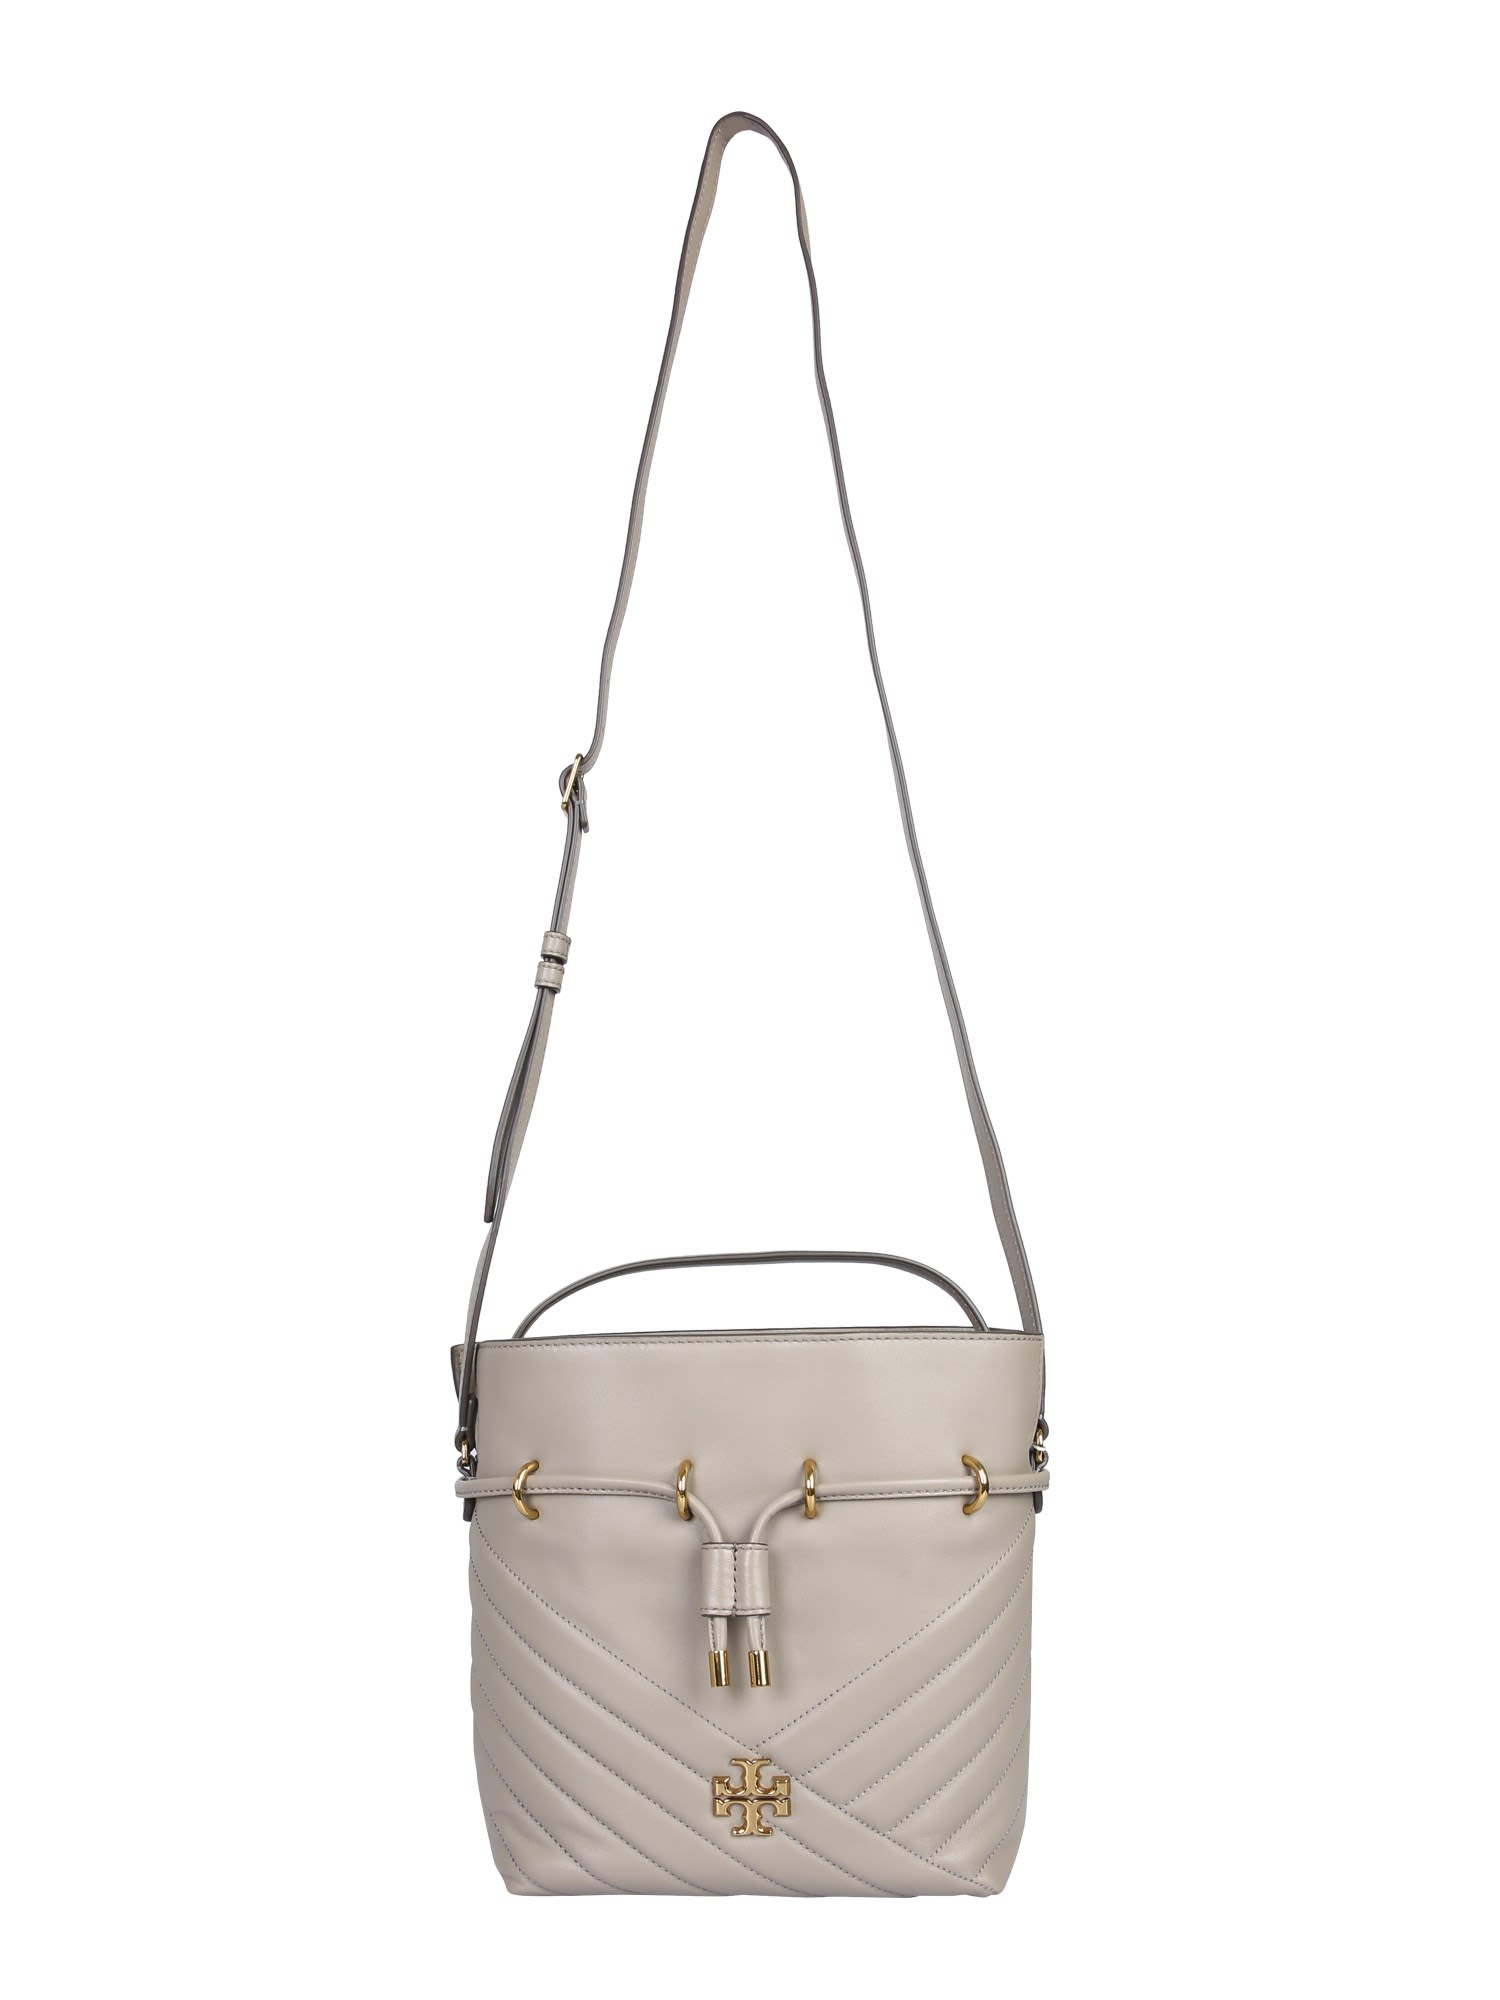 Tory Burch Bags KIRA BUCKET BAG